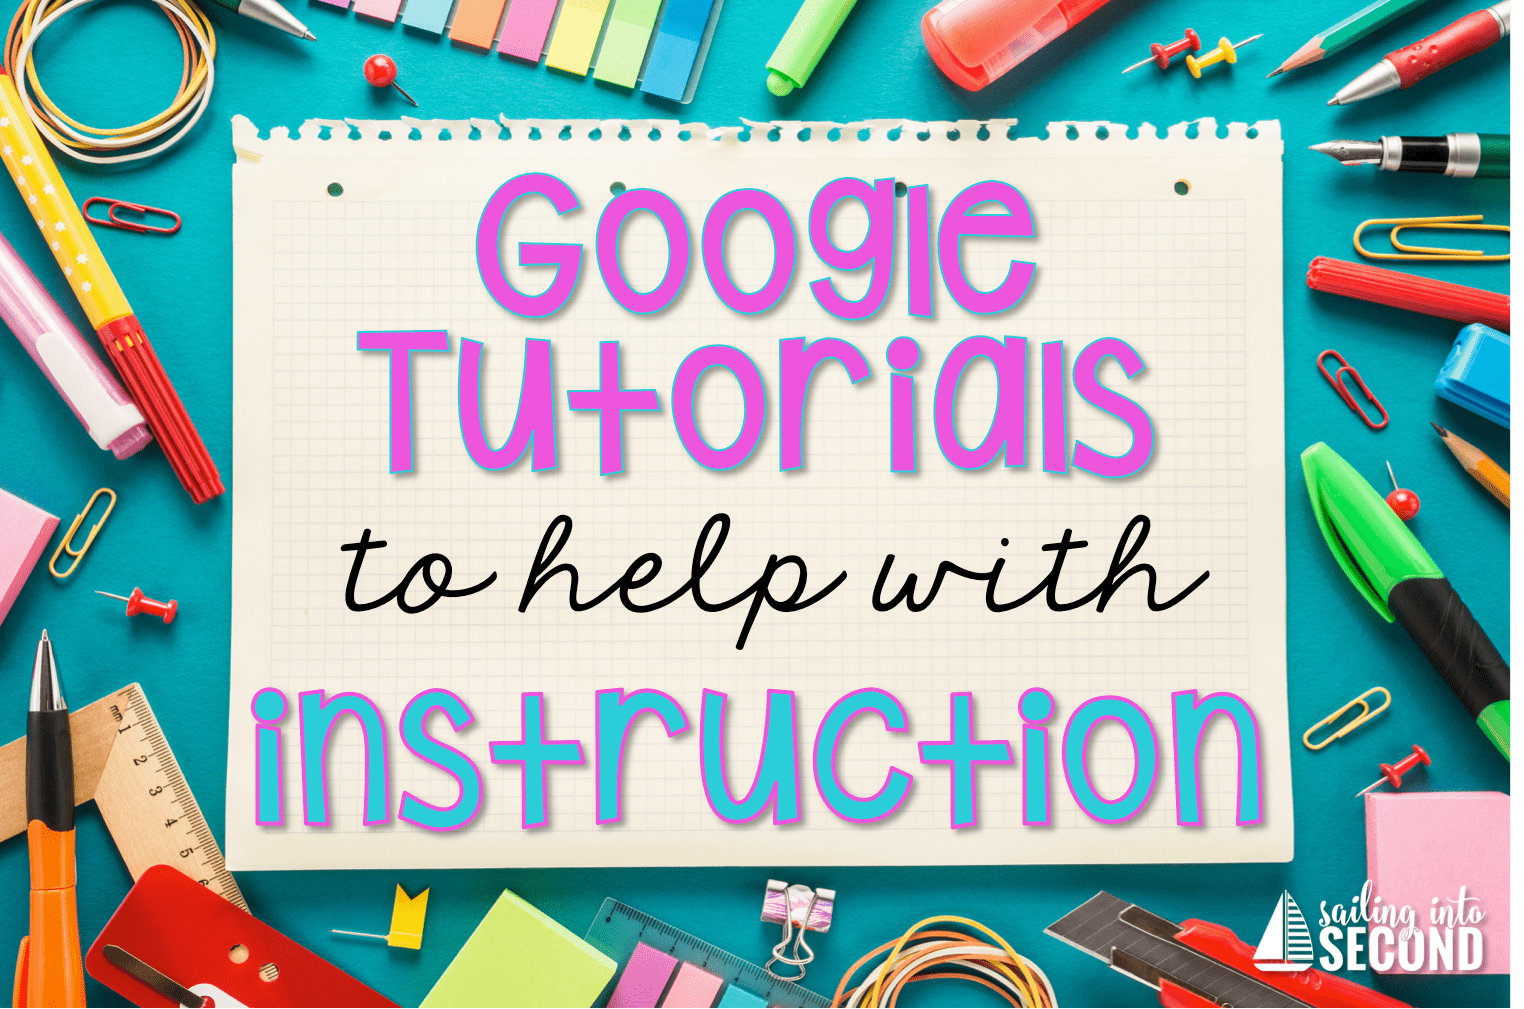 Google tutorials from Sailing into Second